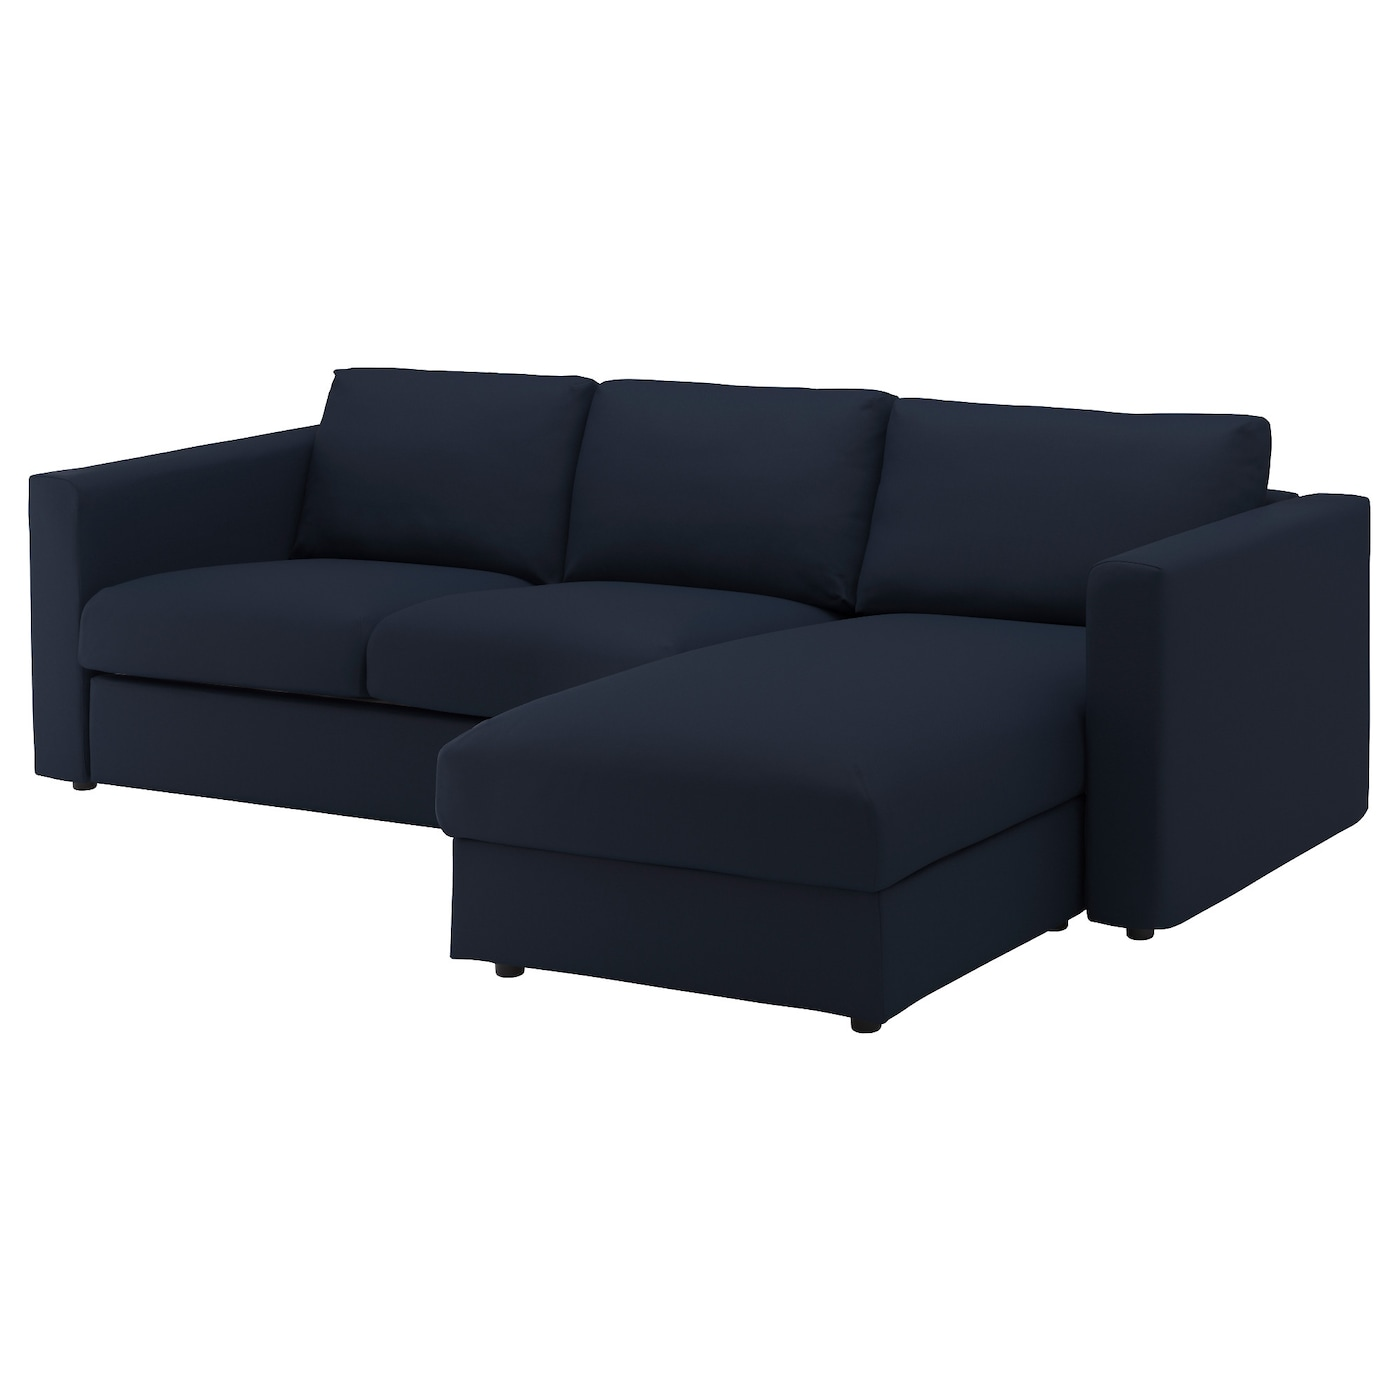 Vimle 3 seat sofa with chaise longue gr sbo black blue ikea for 5 seater sofa with chaise